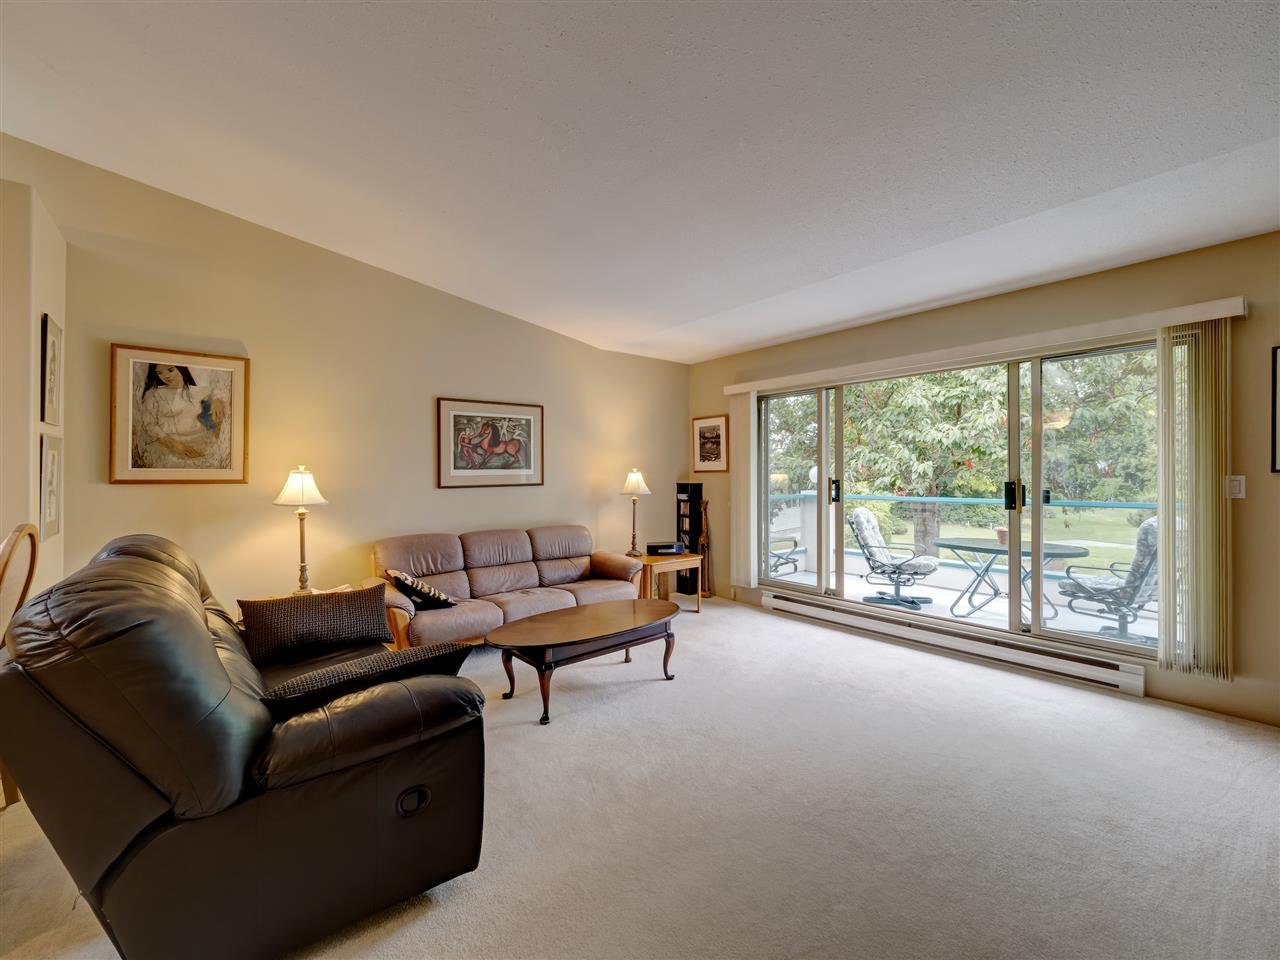 """Photo 3: Photos: 41 555 EAGLECREST Drive in Gibsons: Gibsons & Area Townhouse for sale in """"GEORGIA MIRAGE"""" (Sunshine Coast)  : MLS®# R2485008"""